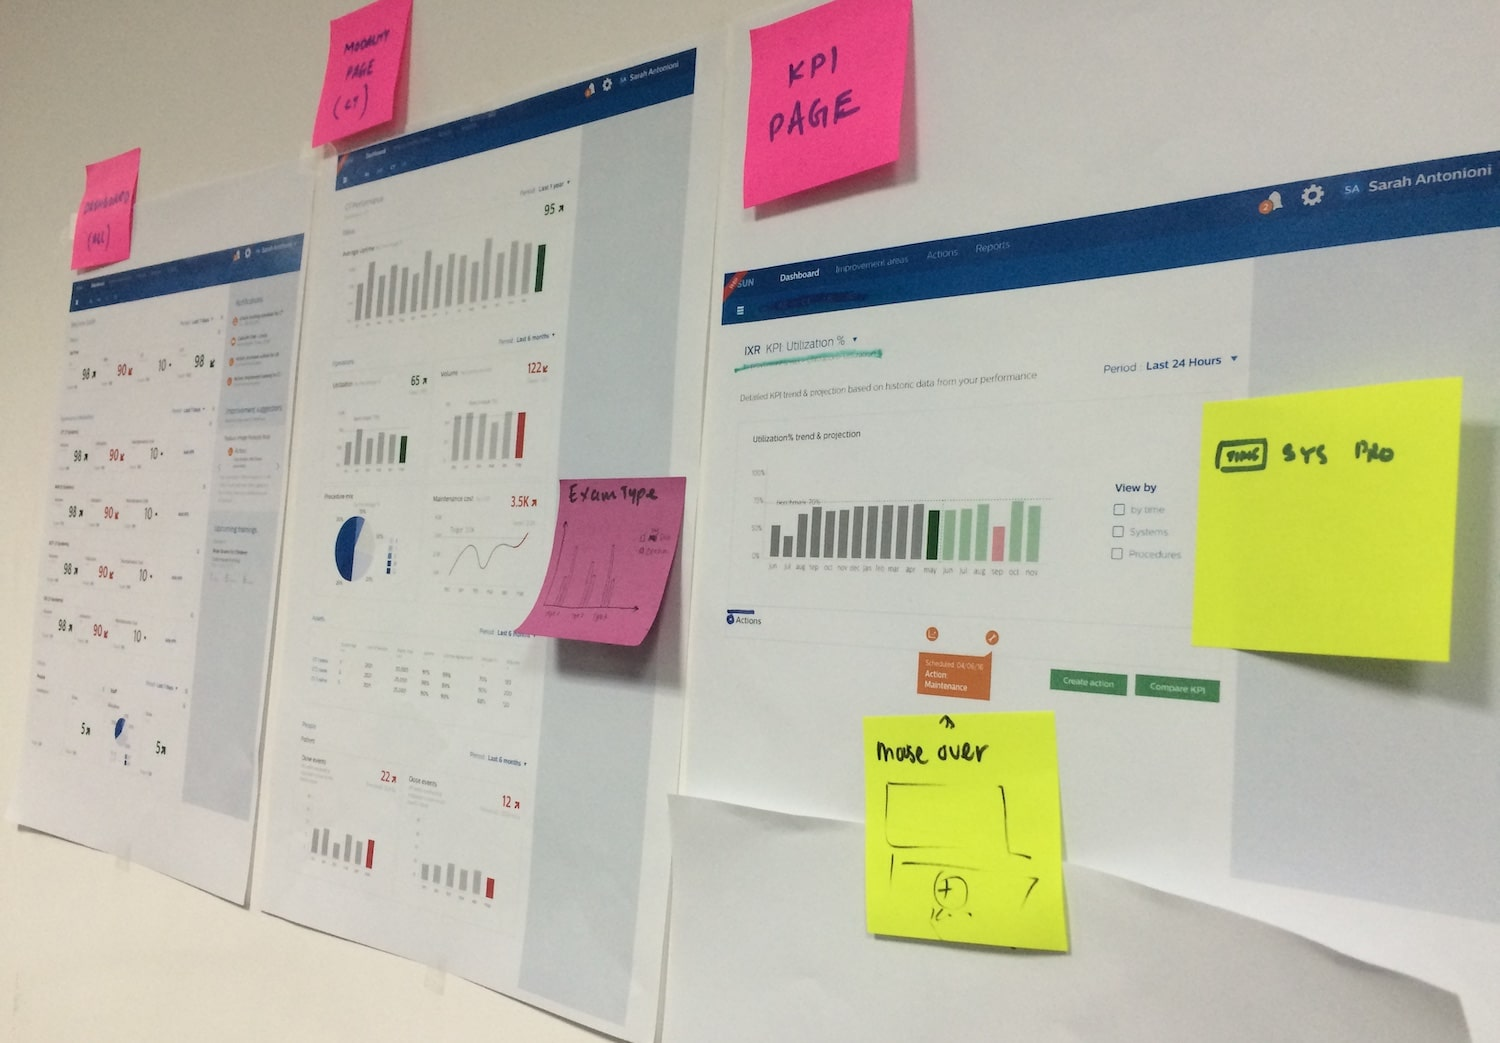 an overview of the dashboard screens printed and glued to a wall